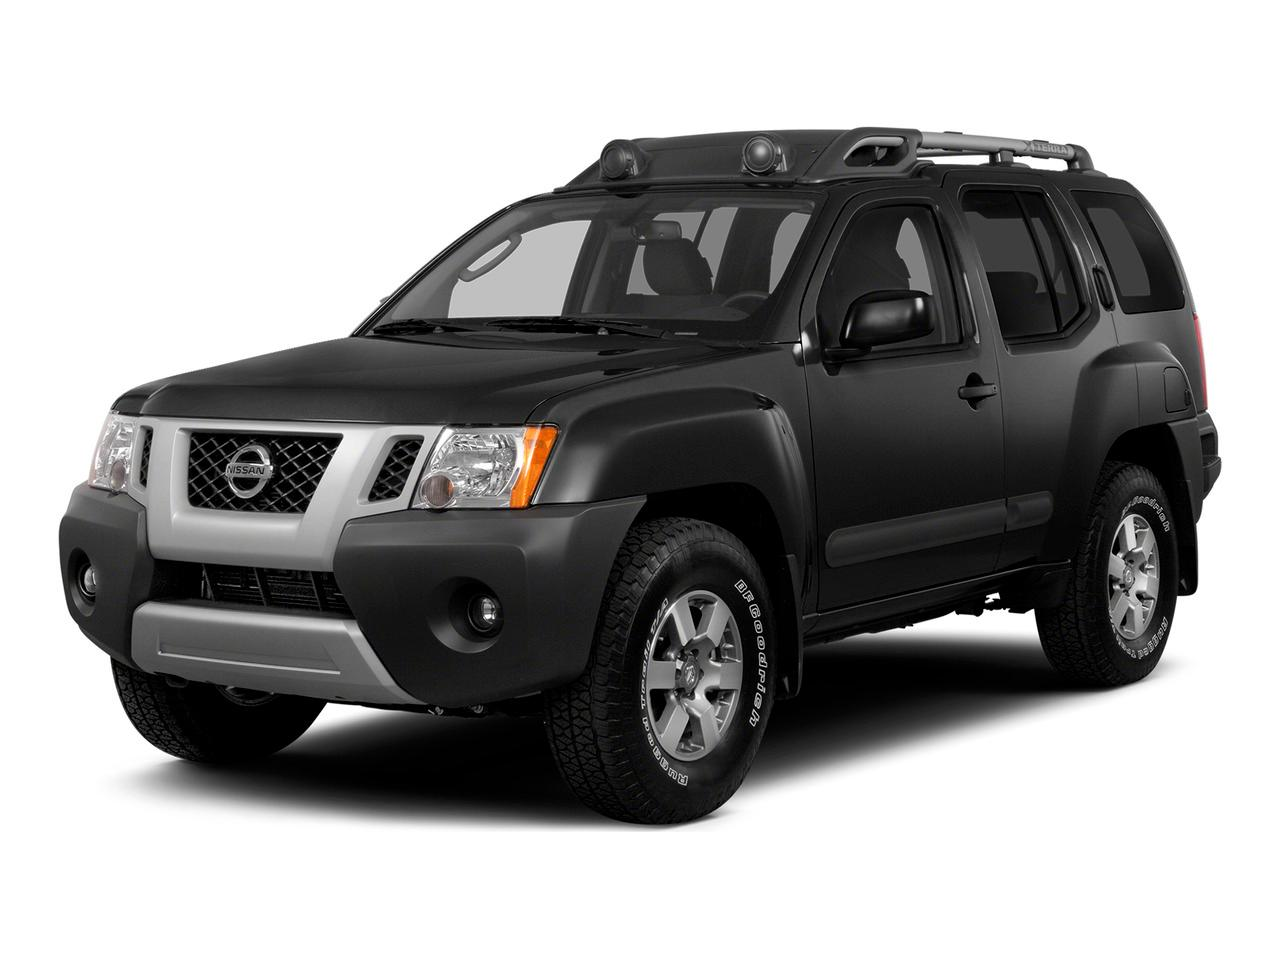 2015 Nissan Xterra Vehicle Photo in Denver, CO 80123